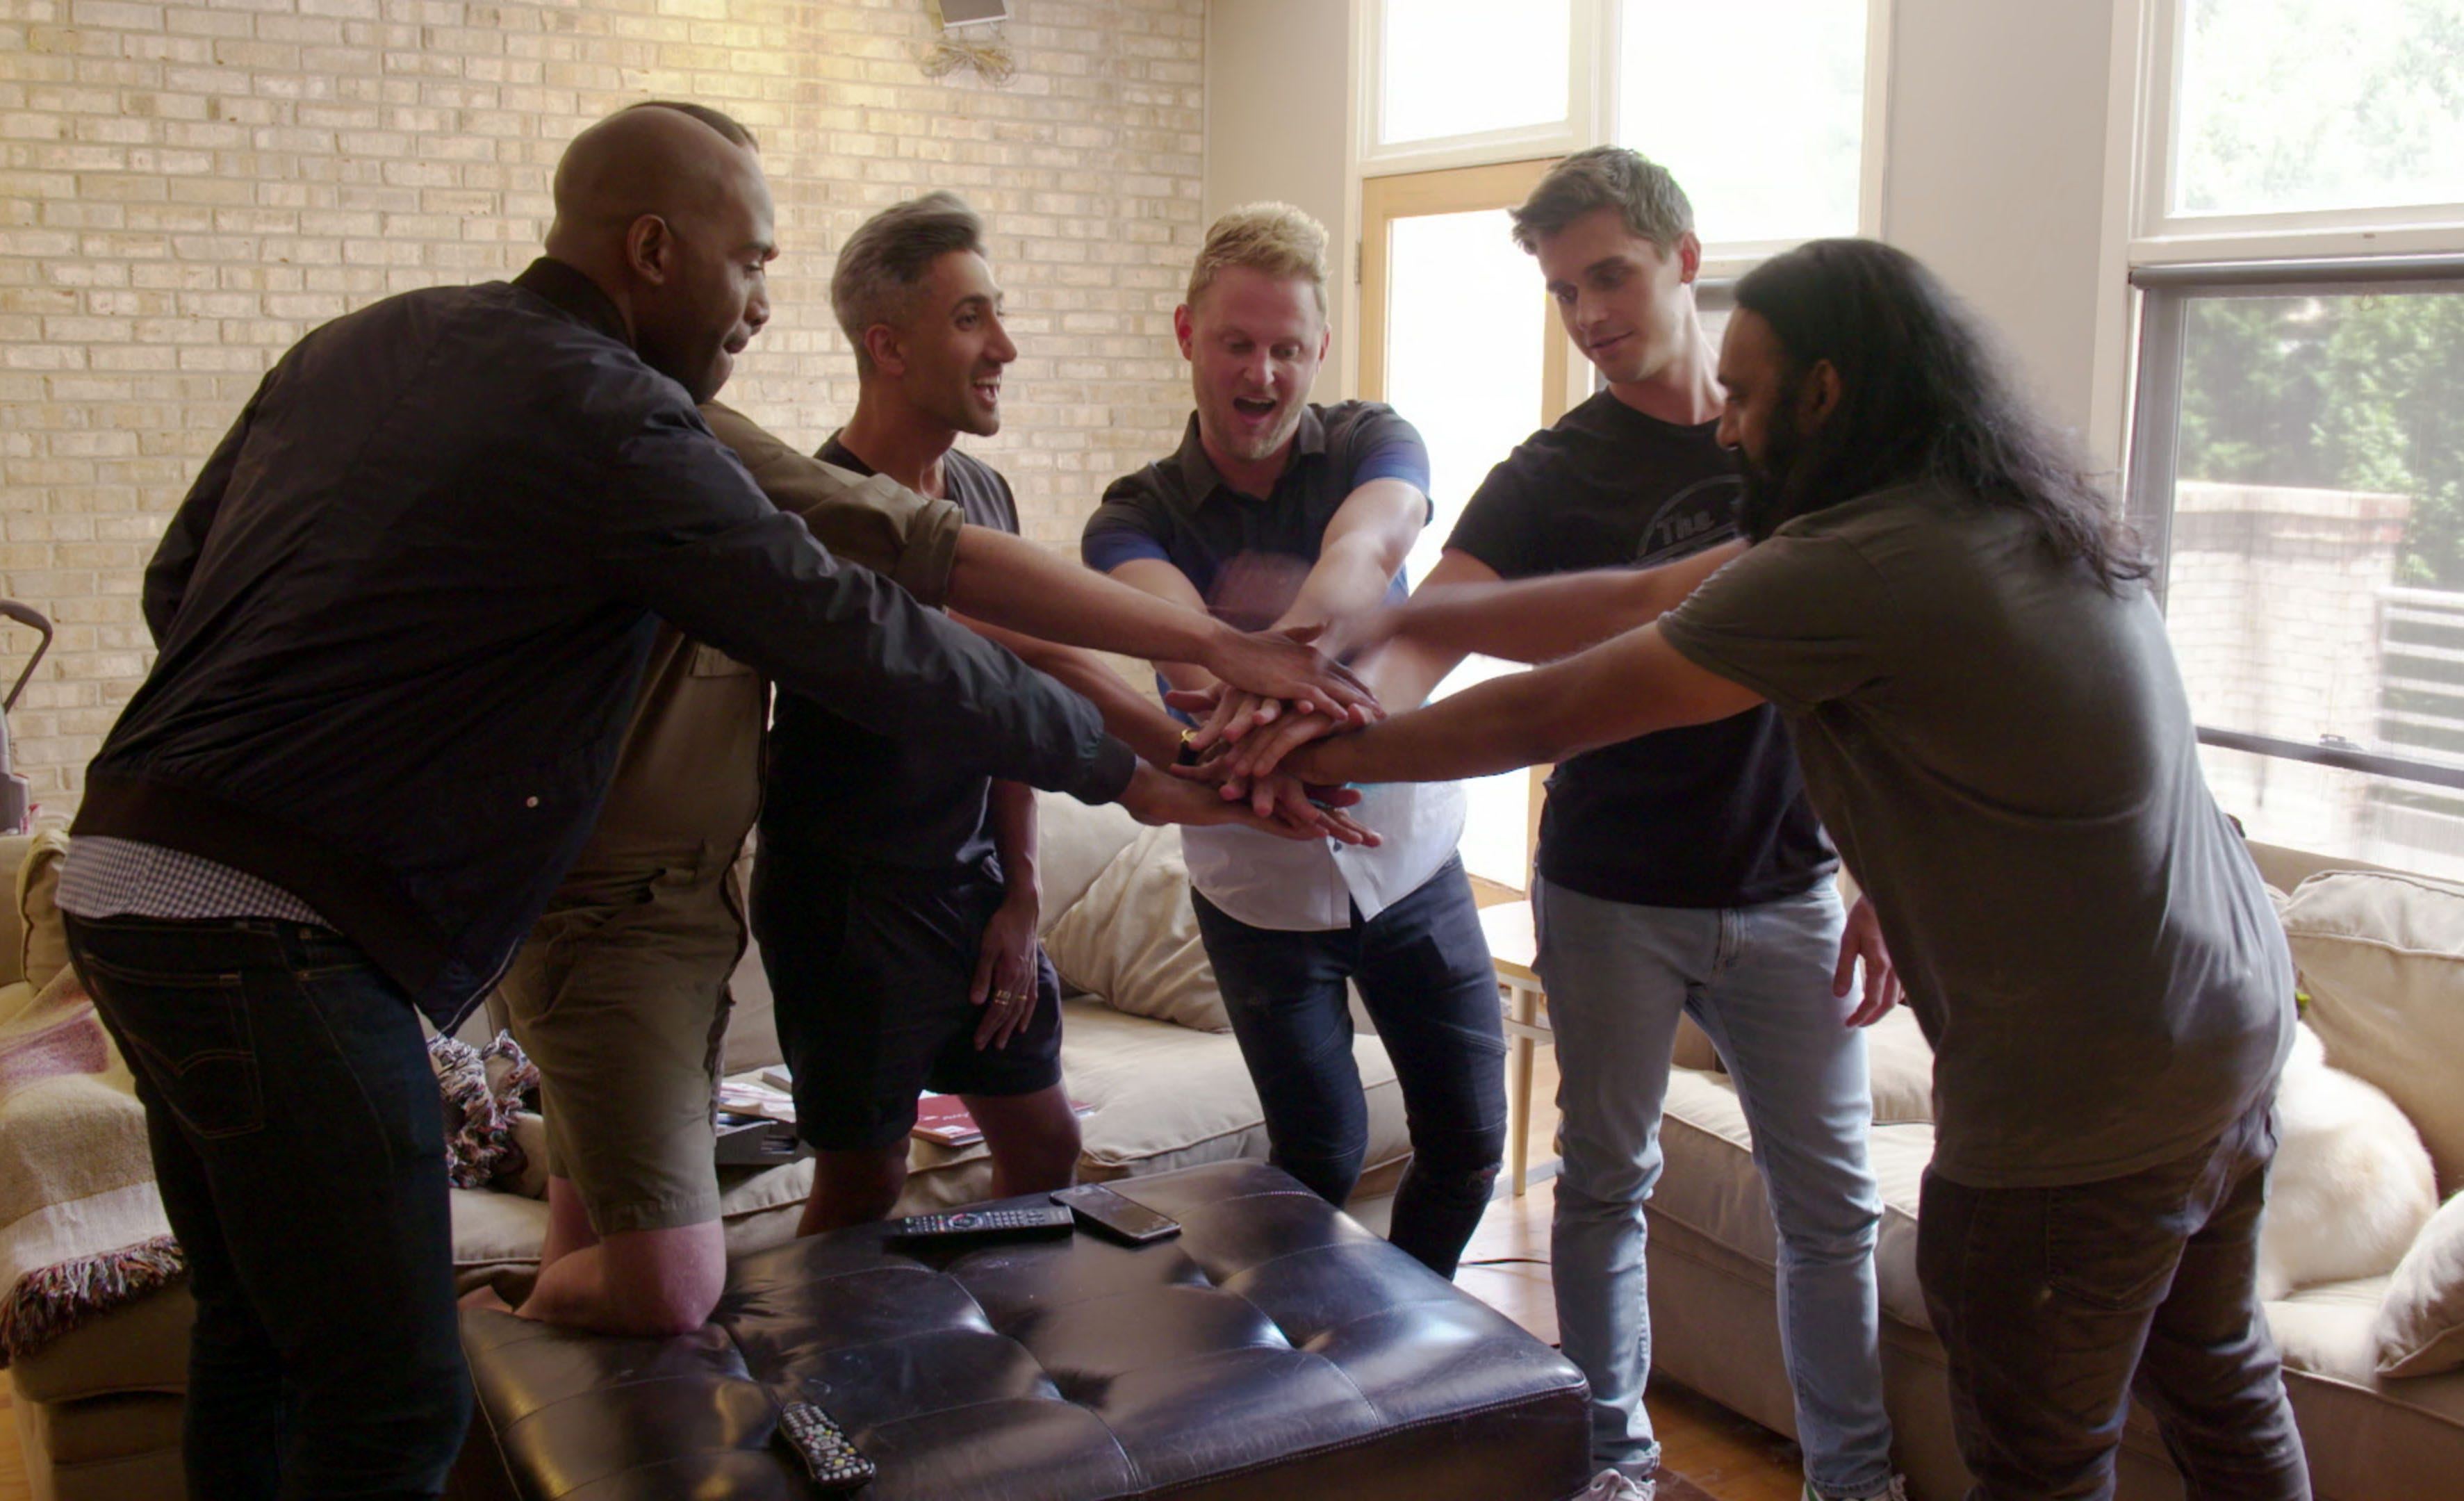 Netflix Queer Eye Cast - Where Are The Contestants Now?